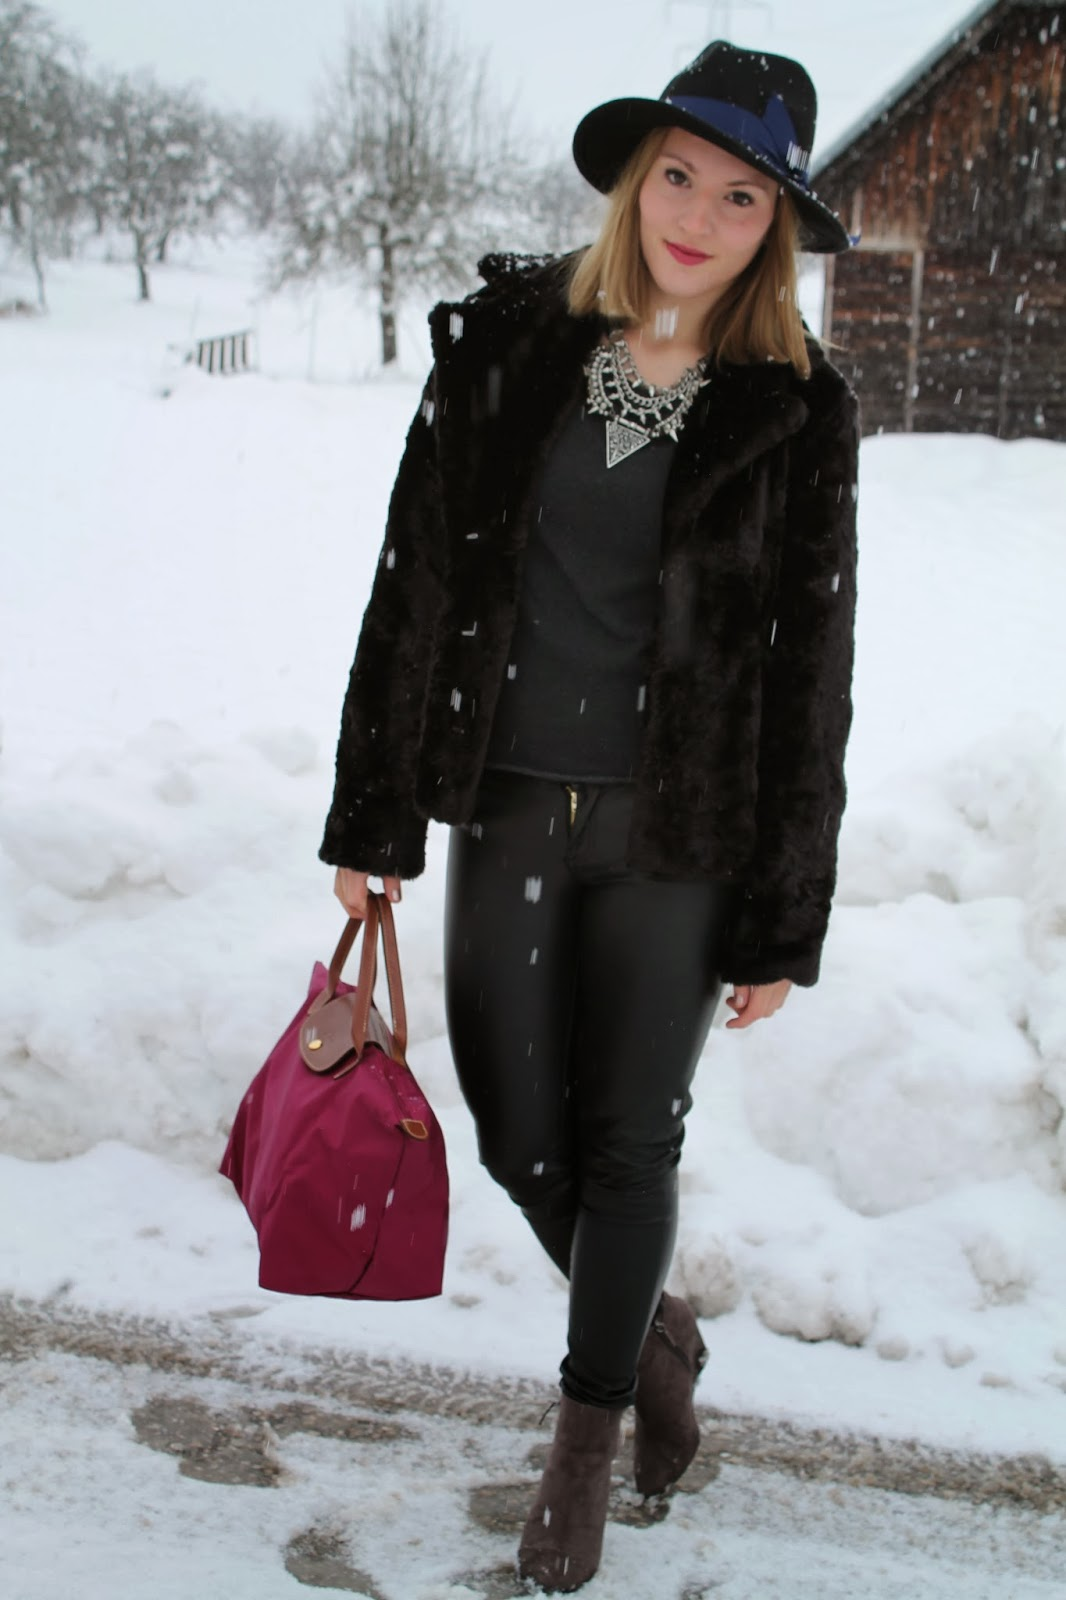 Winter Look Fashion Blogger Österreich Austria Kärnten klagenfurt Köttmannsdorf Longchamp Le Pliage Hut Statement Kette Zara Necklace Zara Austrian Fashion Blogger Leather Pants Leder Hose Fur Jacket Fur Coat Fell Jacke Pelz Jacke Winter Look Winter Style Winter Fashion